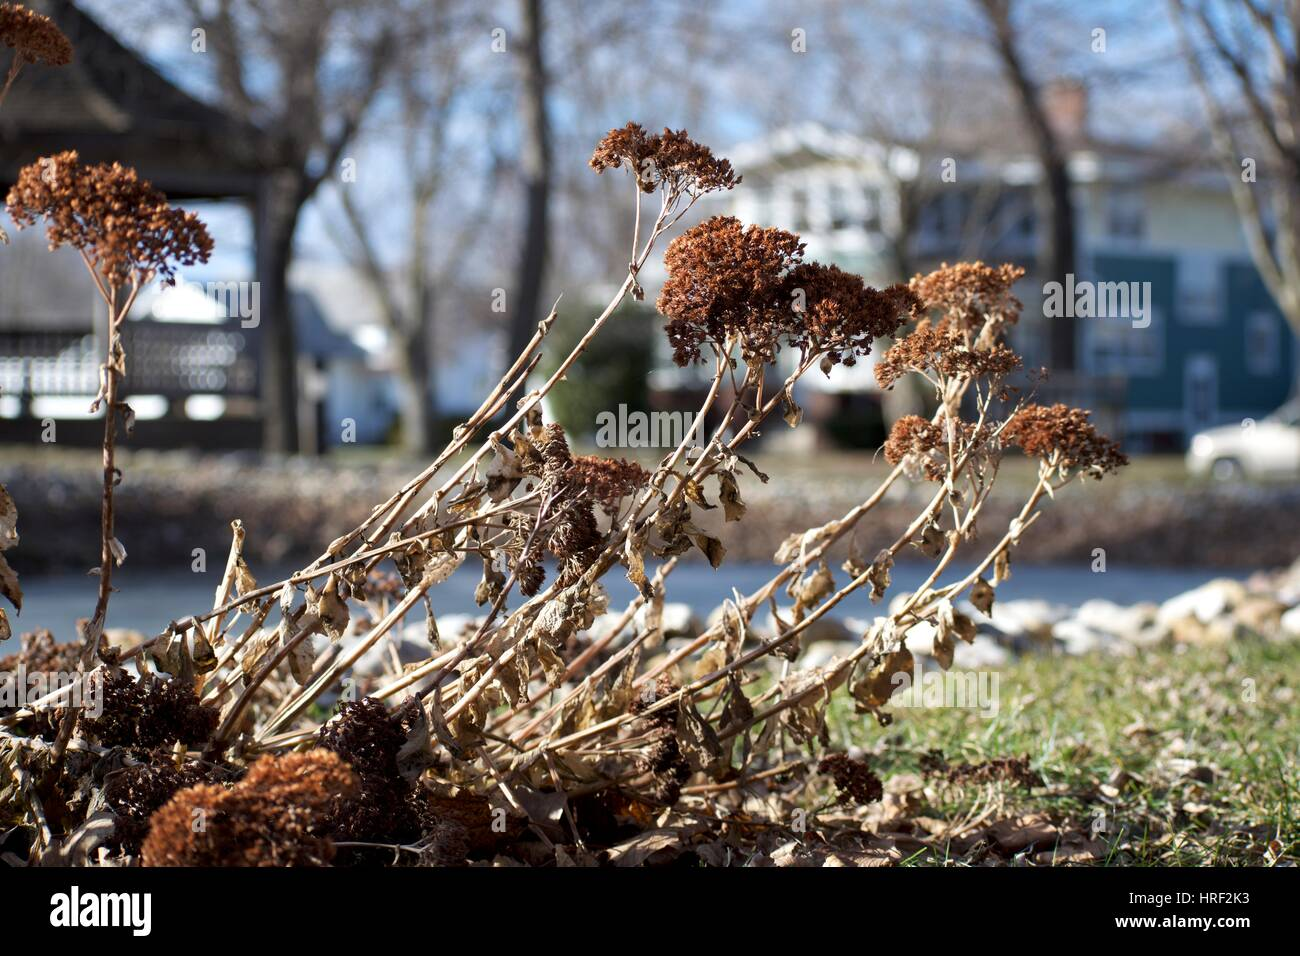 An interesting dead plant by Lund Pond in Forest City, Iowa. - Stock Image